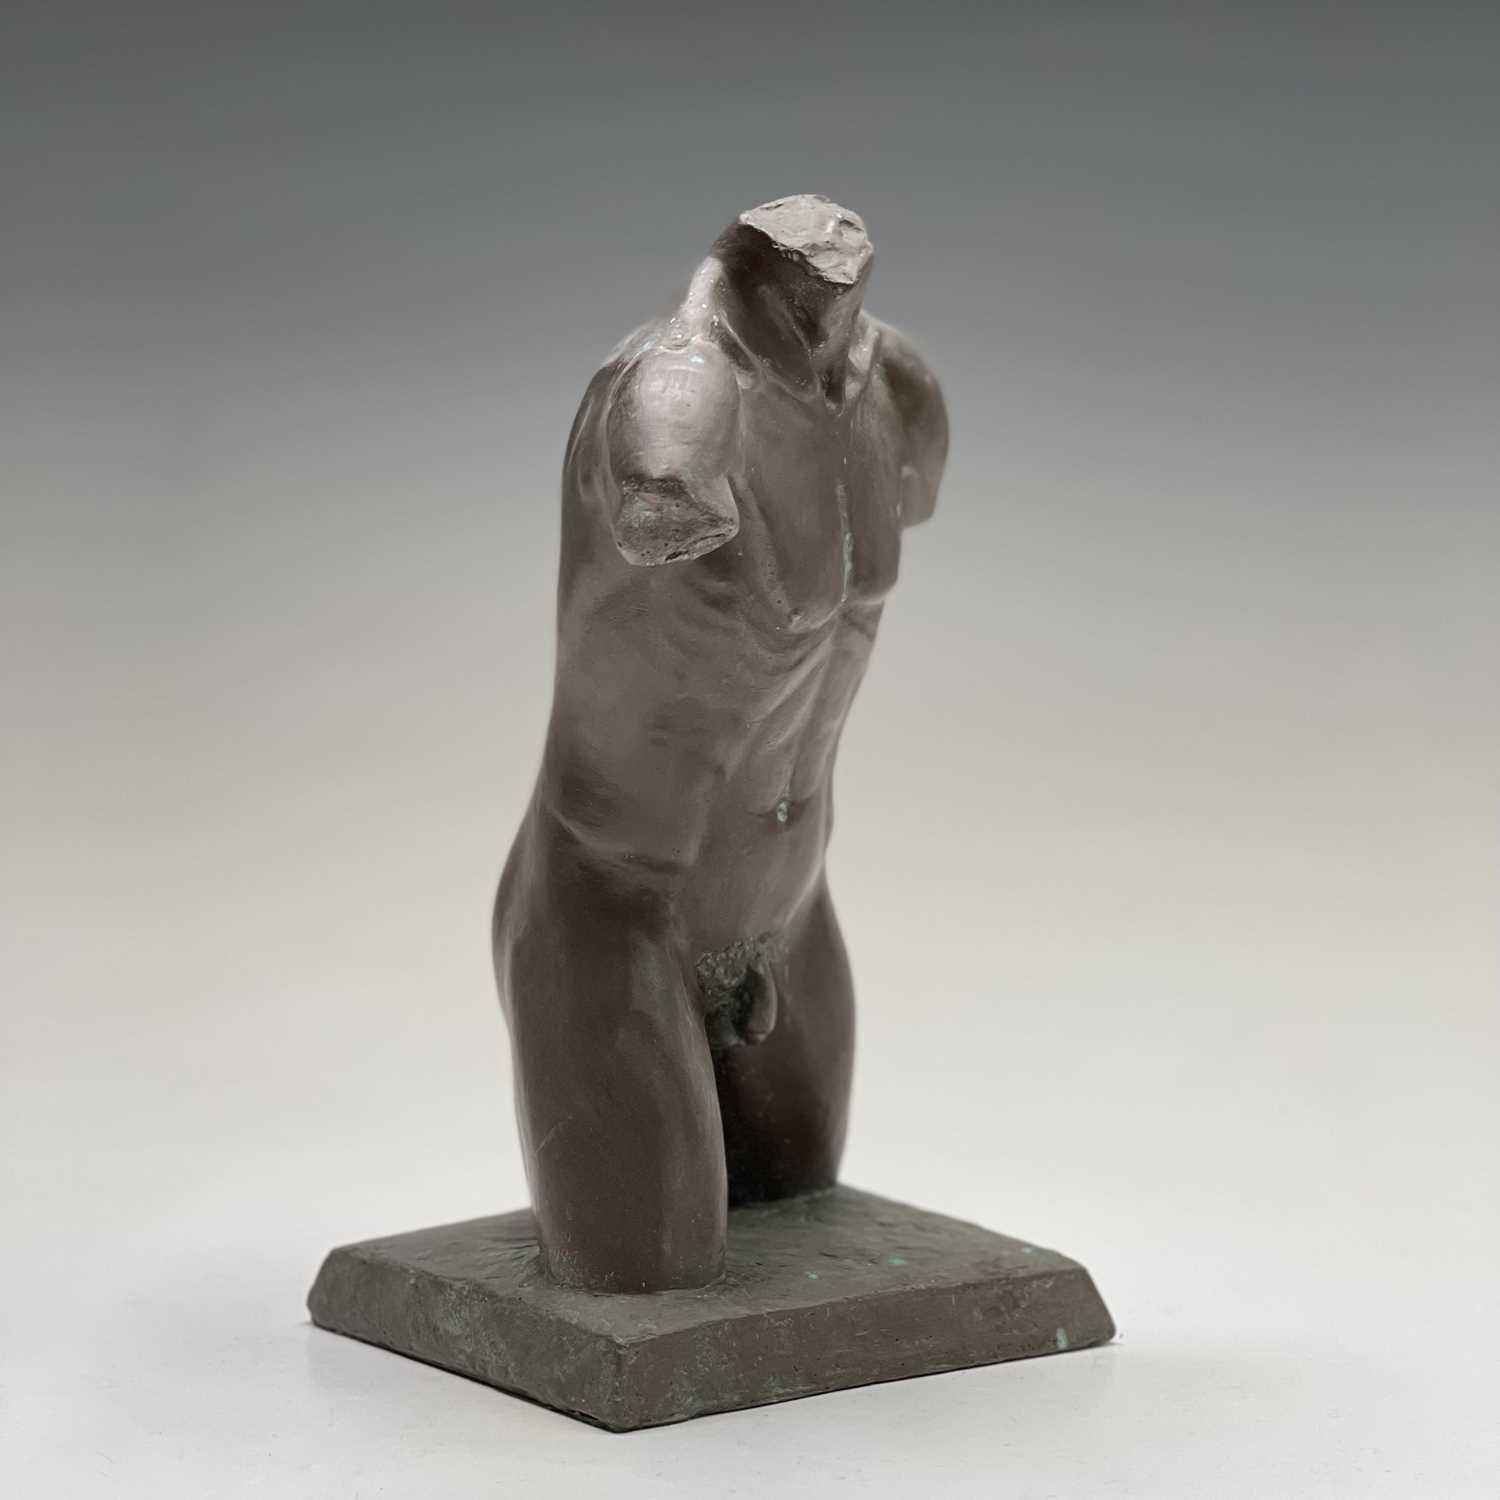 Alec WILES (1924)Males Torso Bronzed resin sculpture Signed and dated 1995Height 27cm - Image 2 of 10